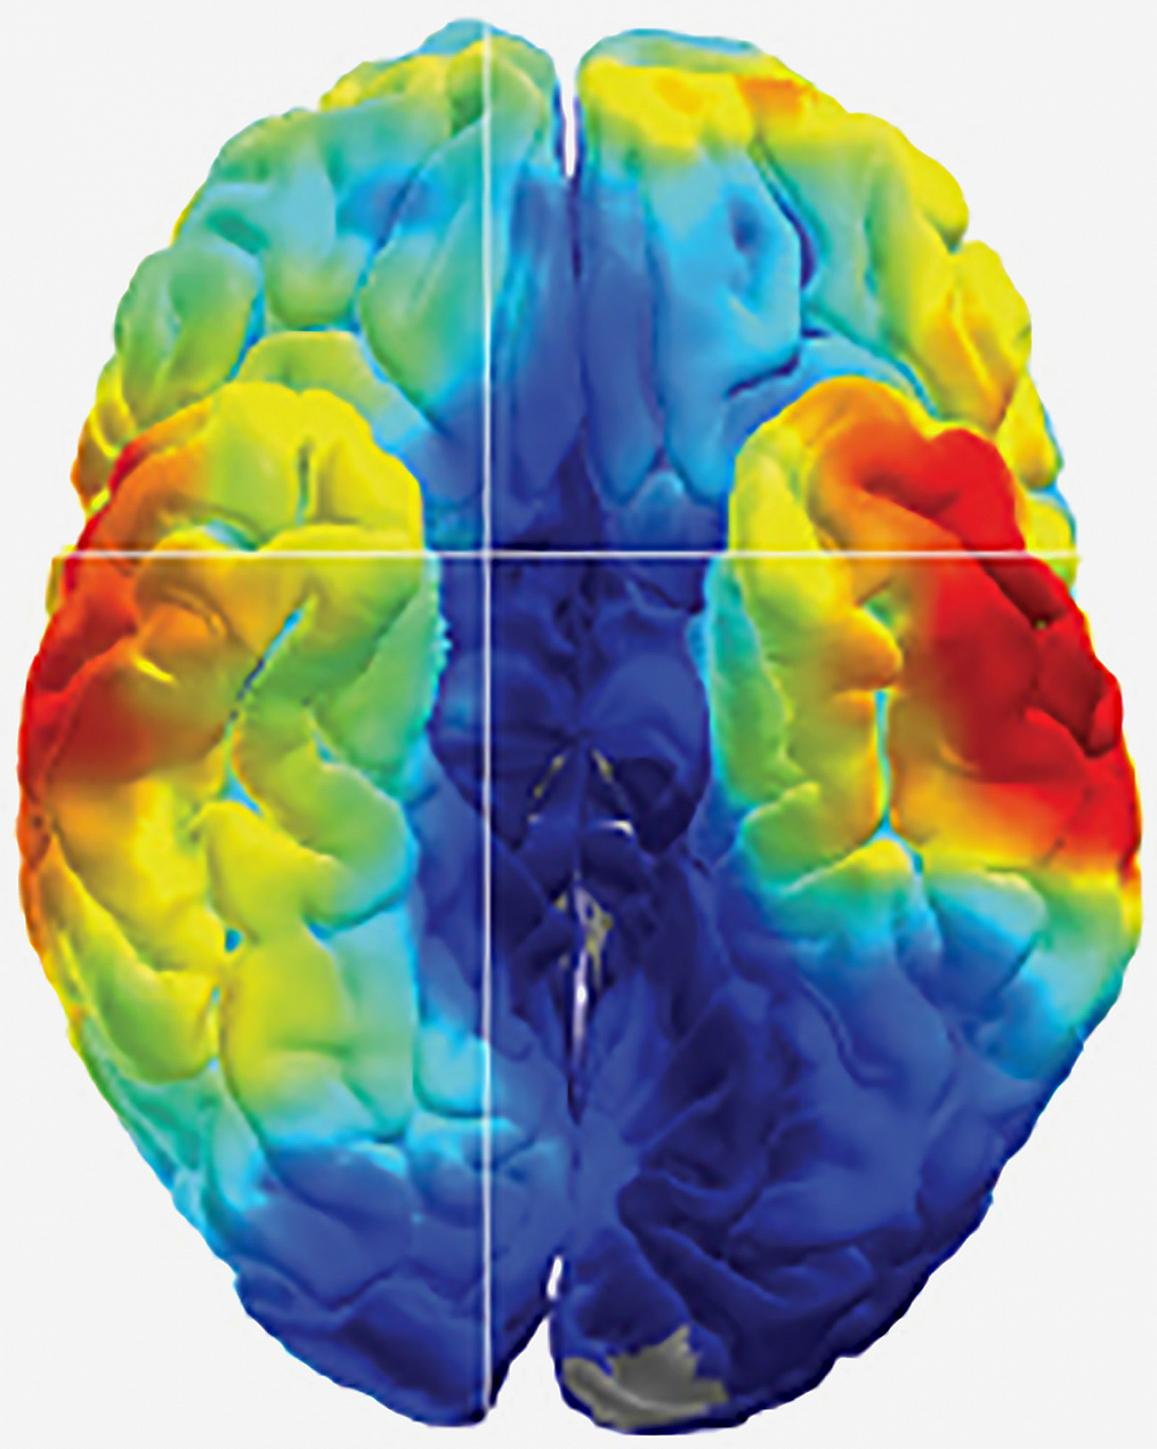 Studies of epilepsy patients uncover clues to how the brain remembers.